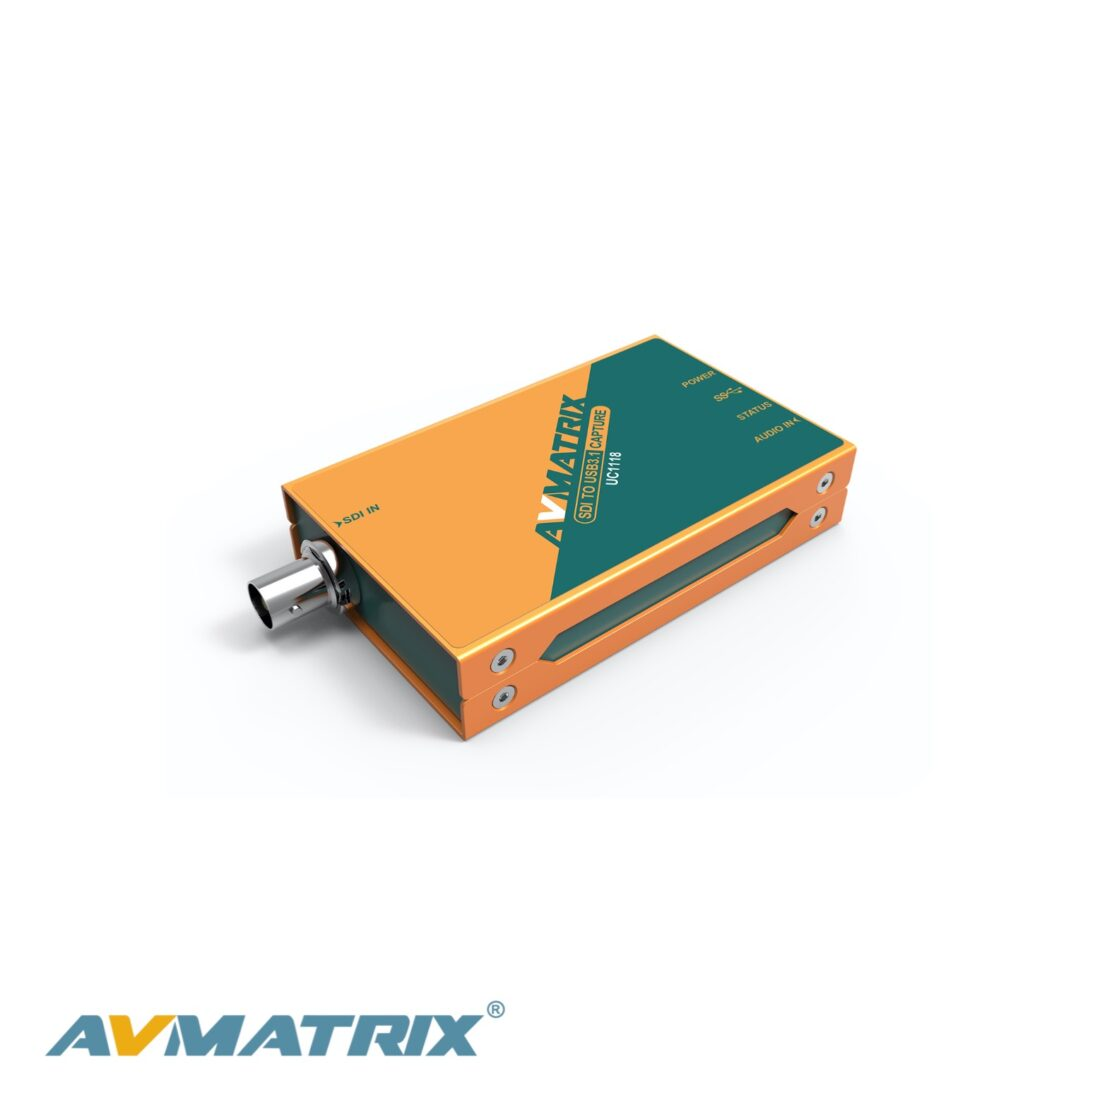 AVMatrix UC1118 main